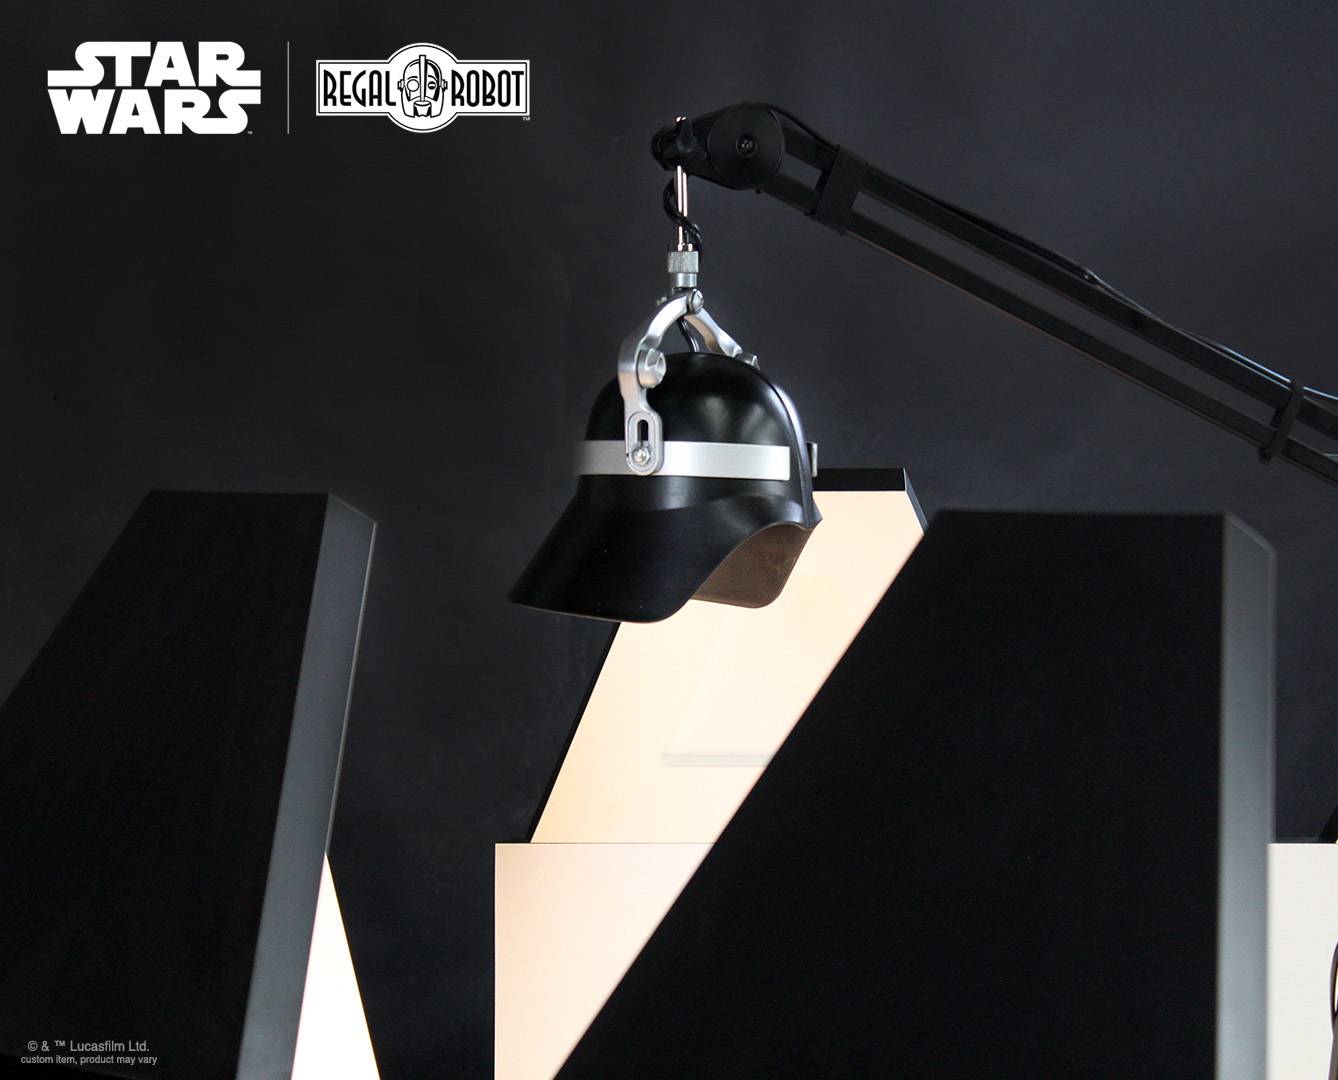 Custom Empire Strikes Back desk created by Regal Robot